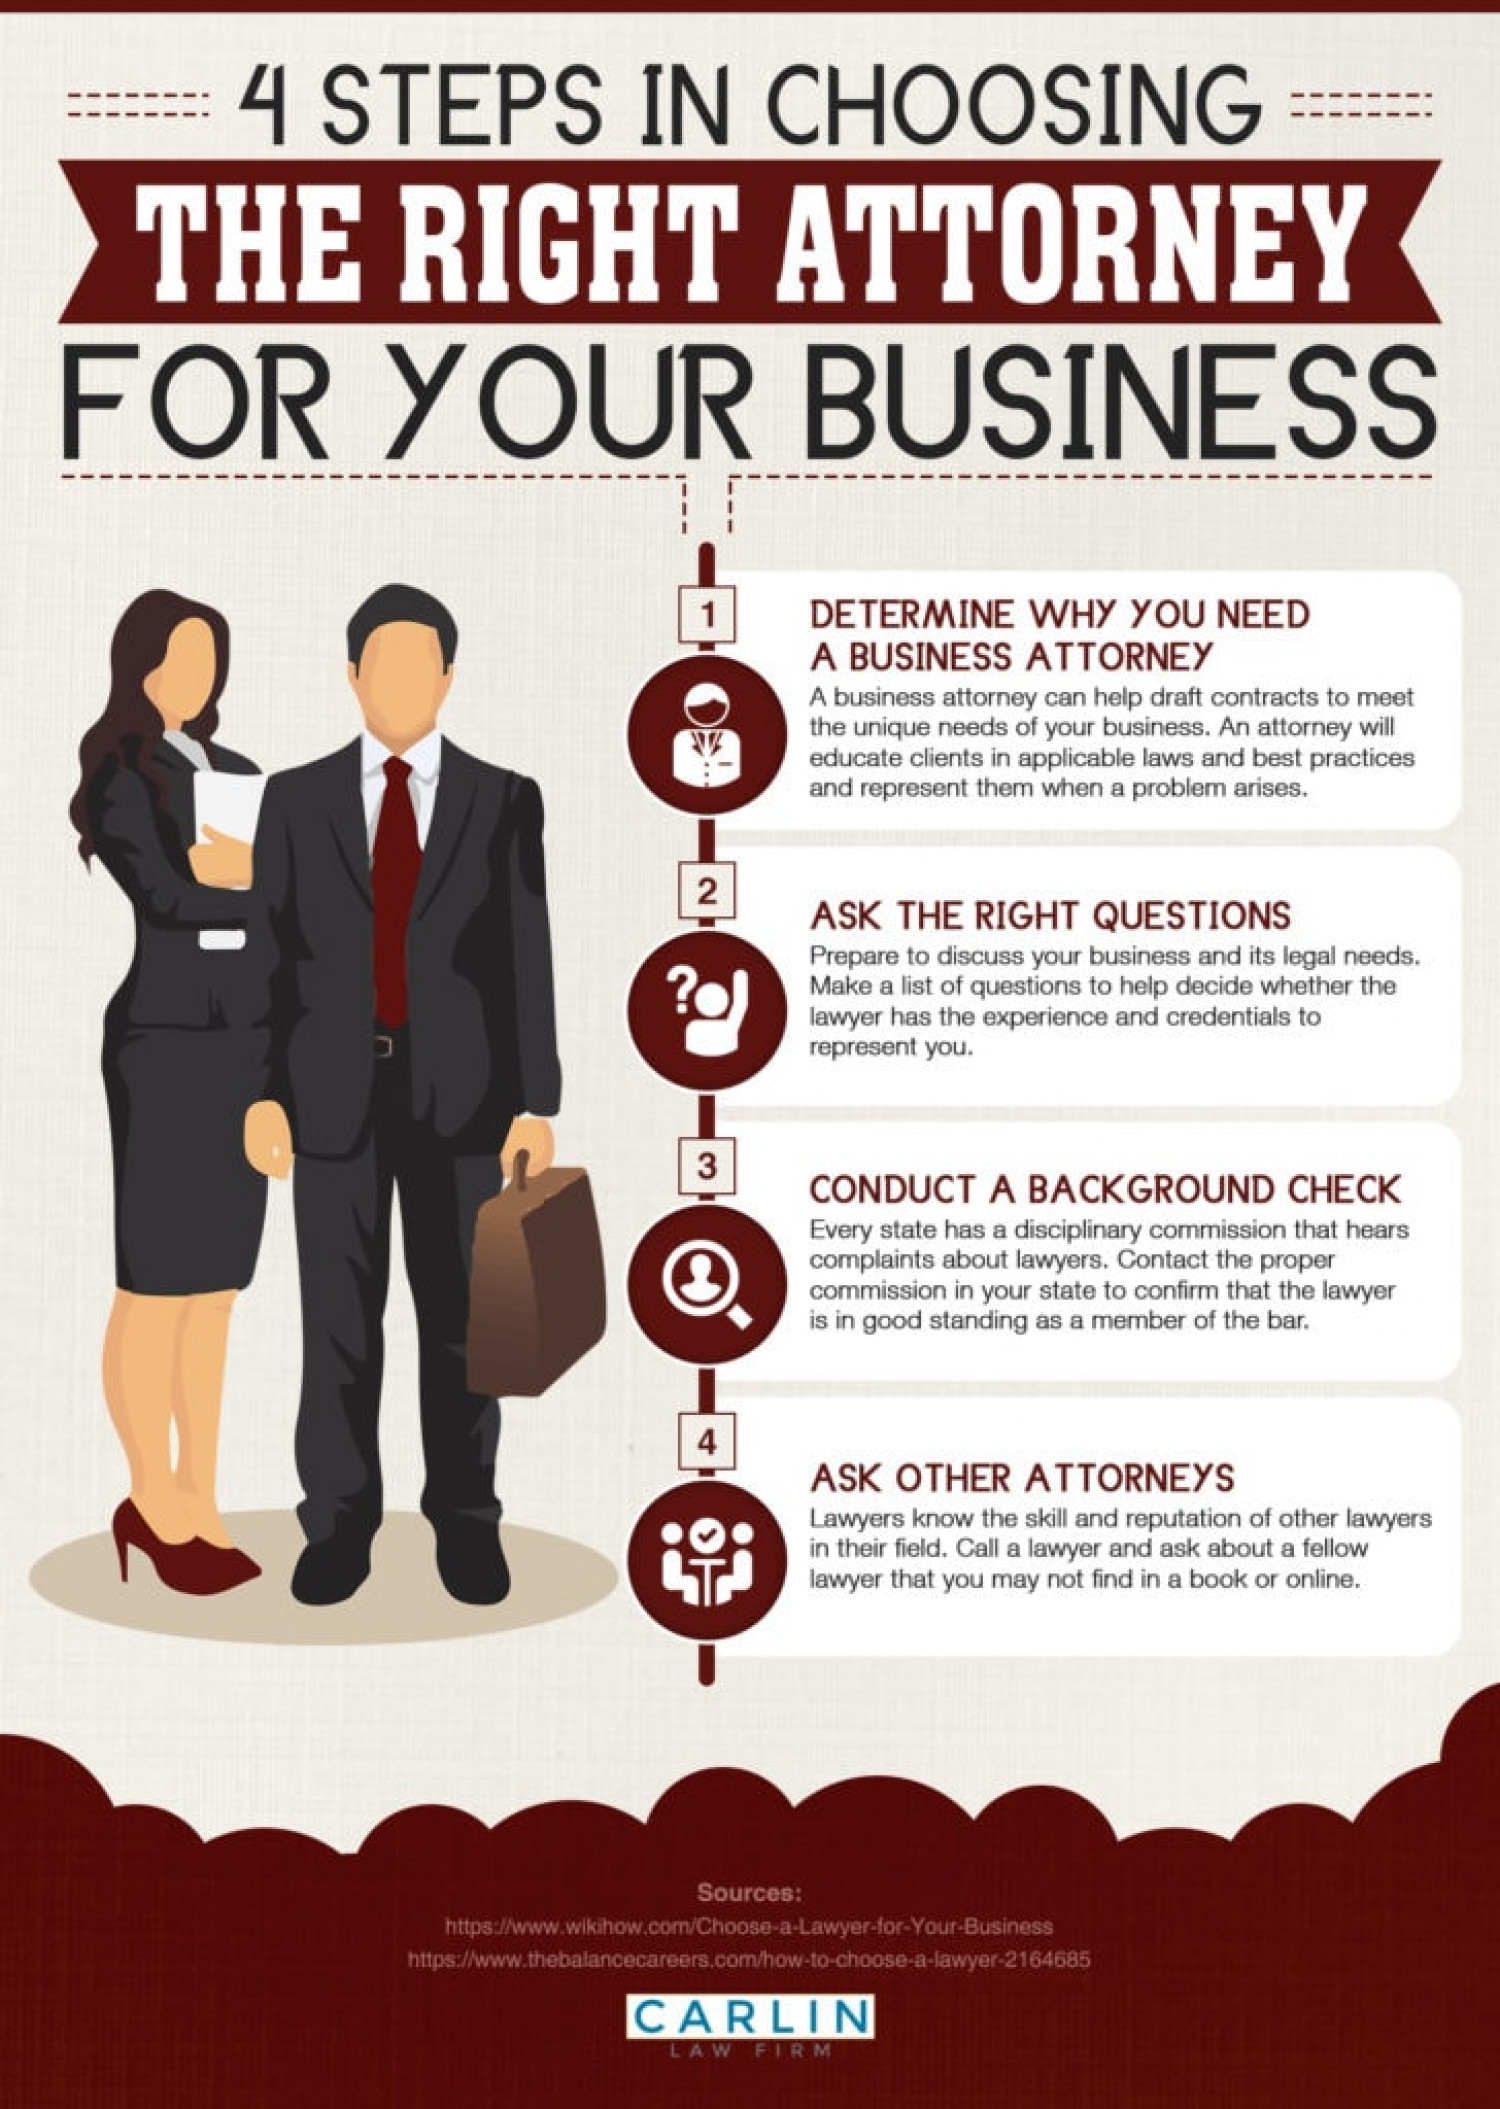 Top Tips for Choosing the Right Business Attorney Infographic